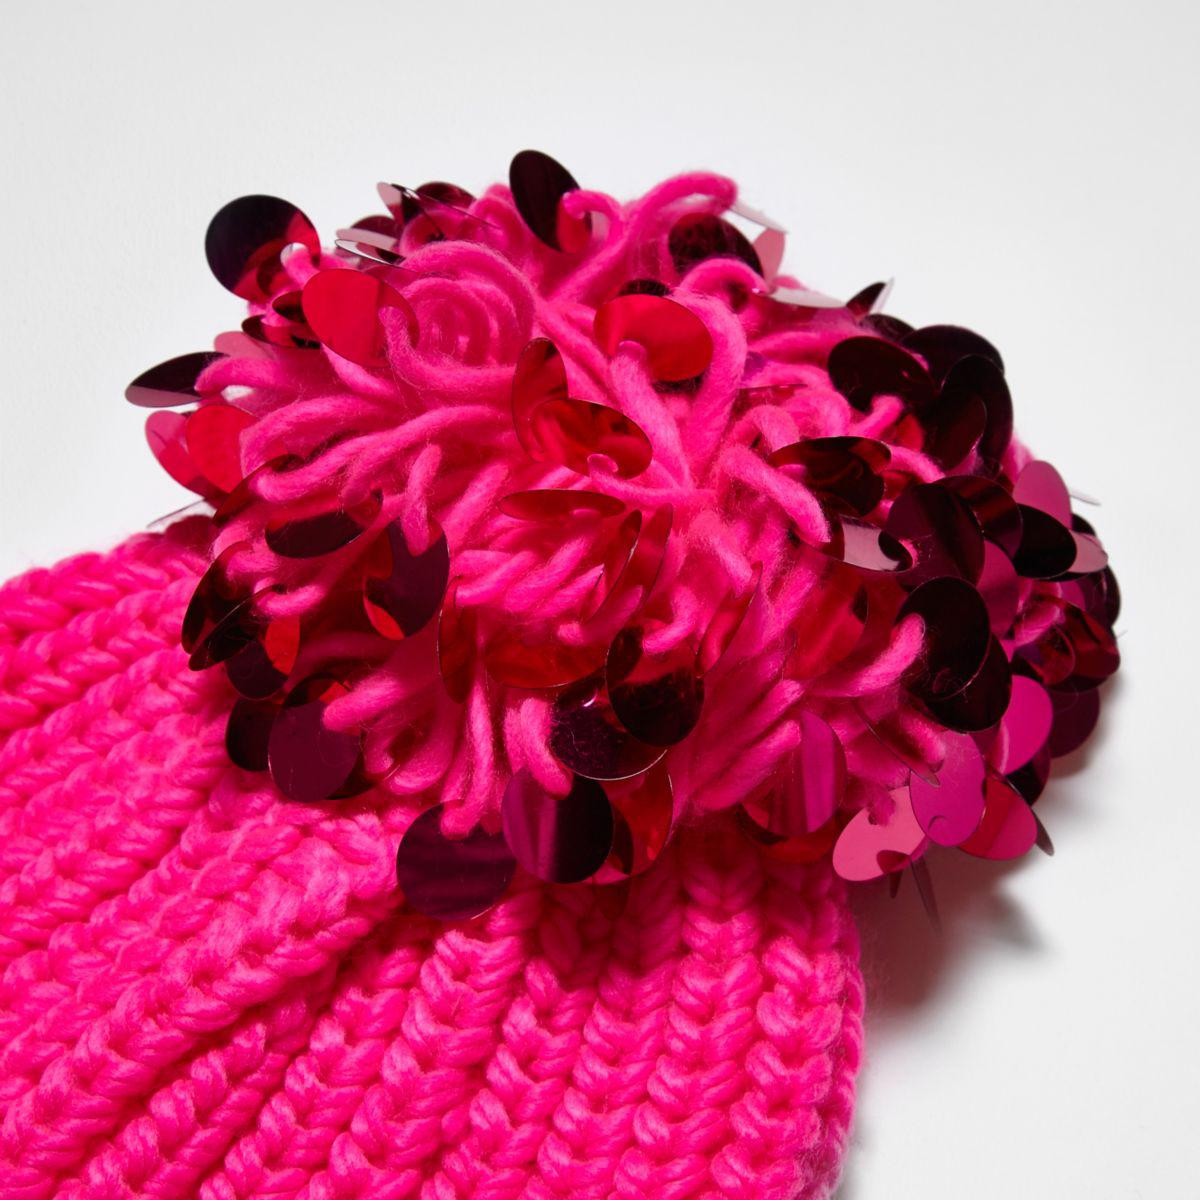 5d2db817138f3 River Island Bright Pink Sequin Pom Pom Beanie Hat in Pink - Lyst